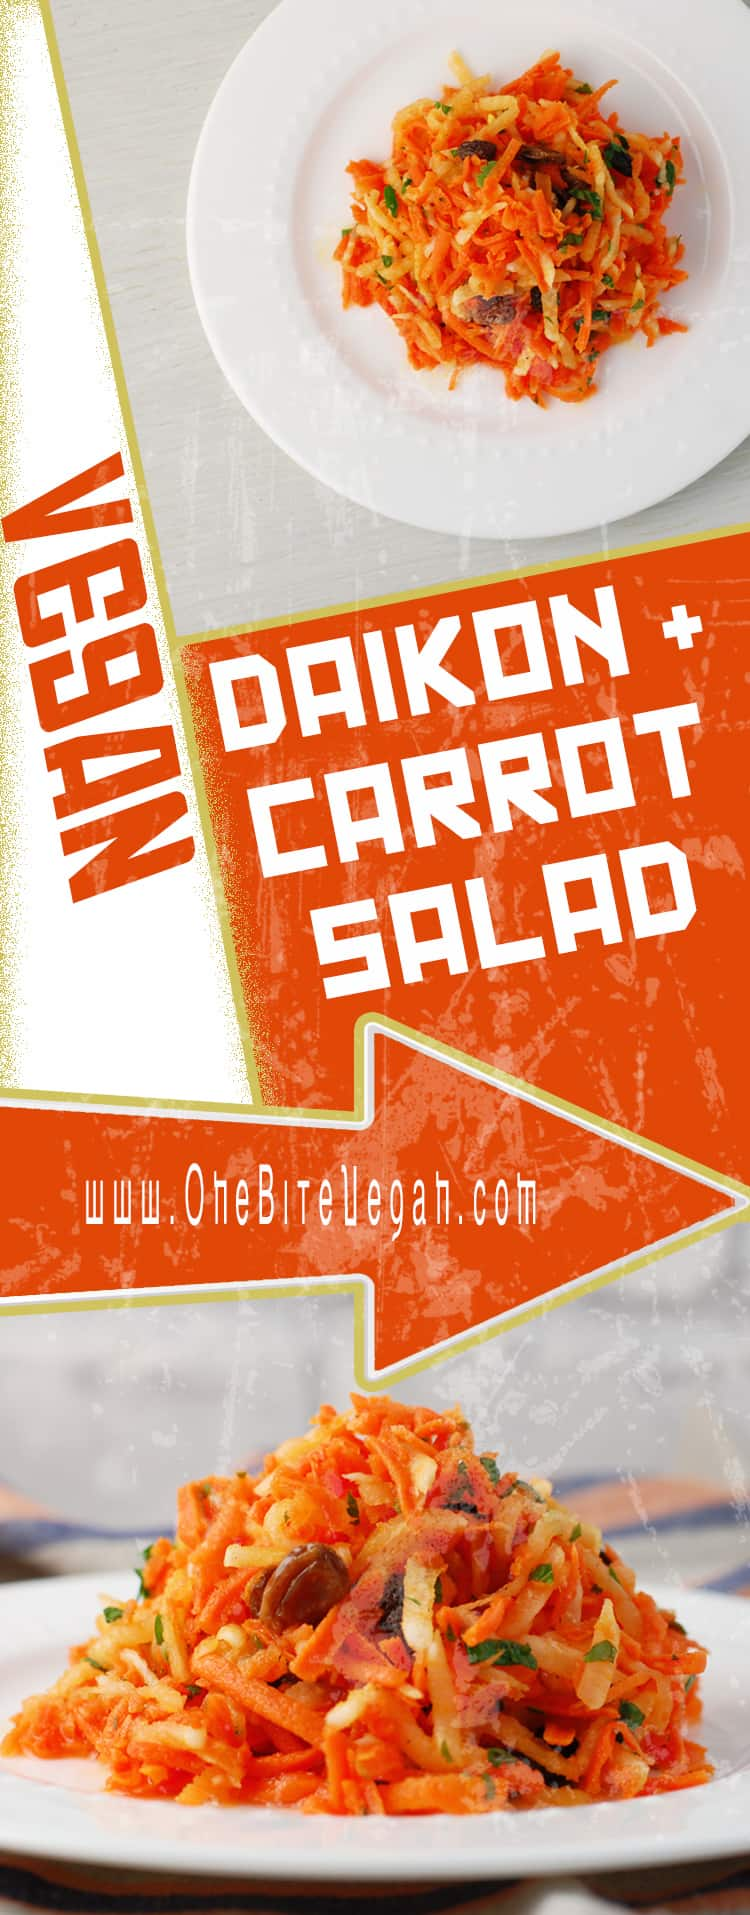 Grated daikon carrot salad with raisins. Fresh Daikon radish and carrots are grated and mixed with plump raisins, lemon juice, cilantro, and olive oil.